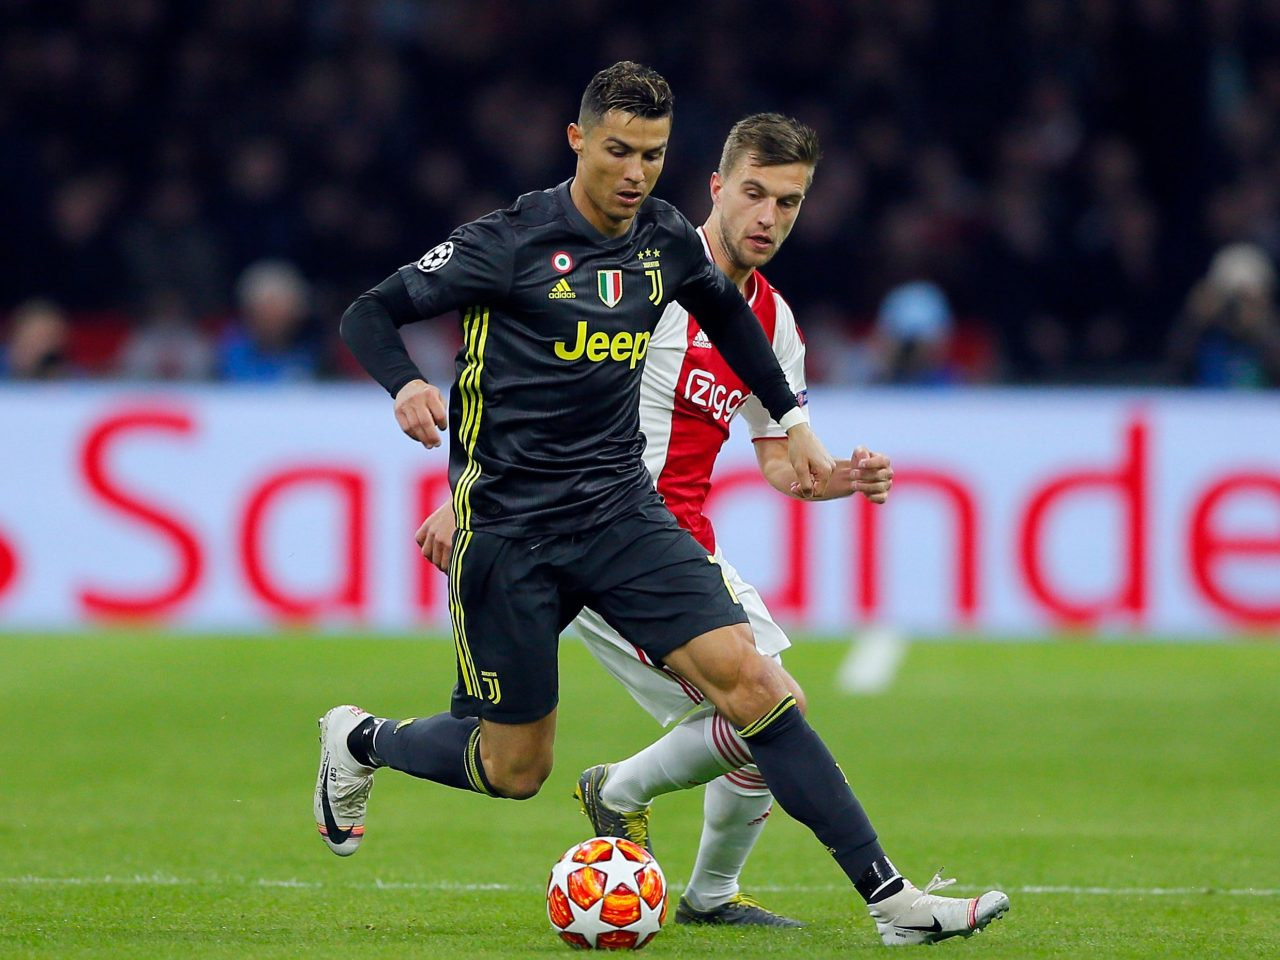 Juventus vs Ajax Betting Tips